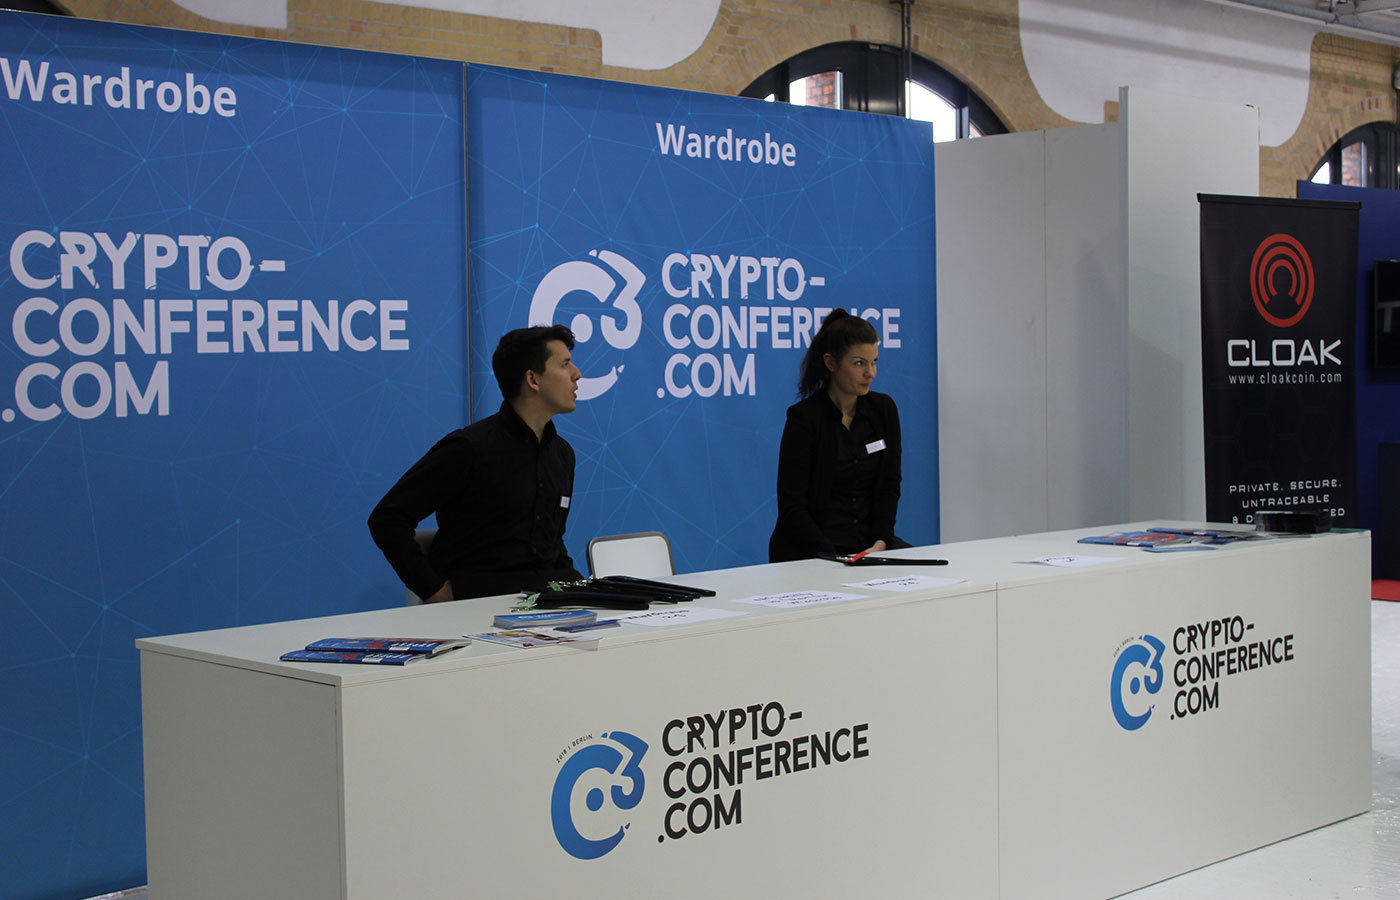 C3 Crypto – Conference